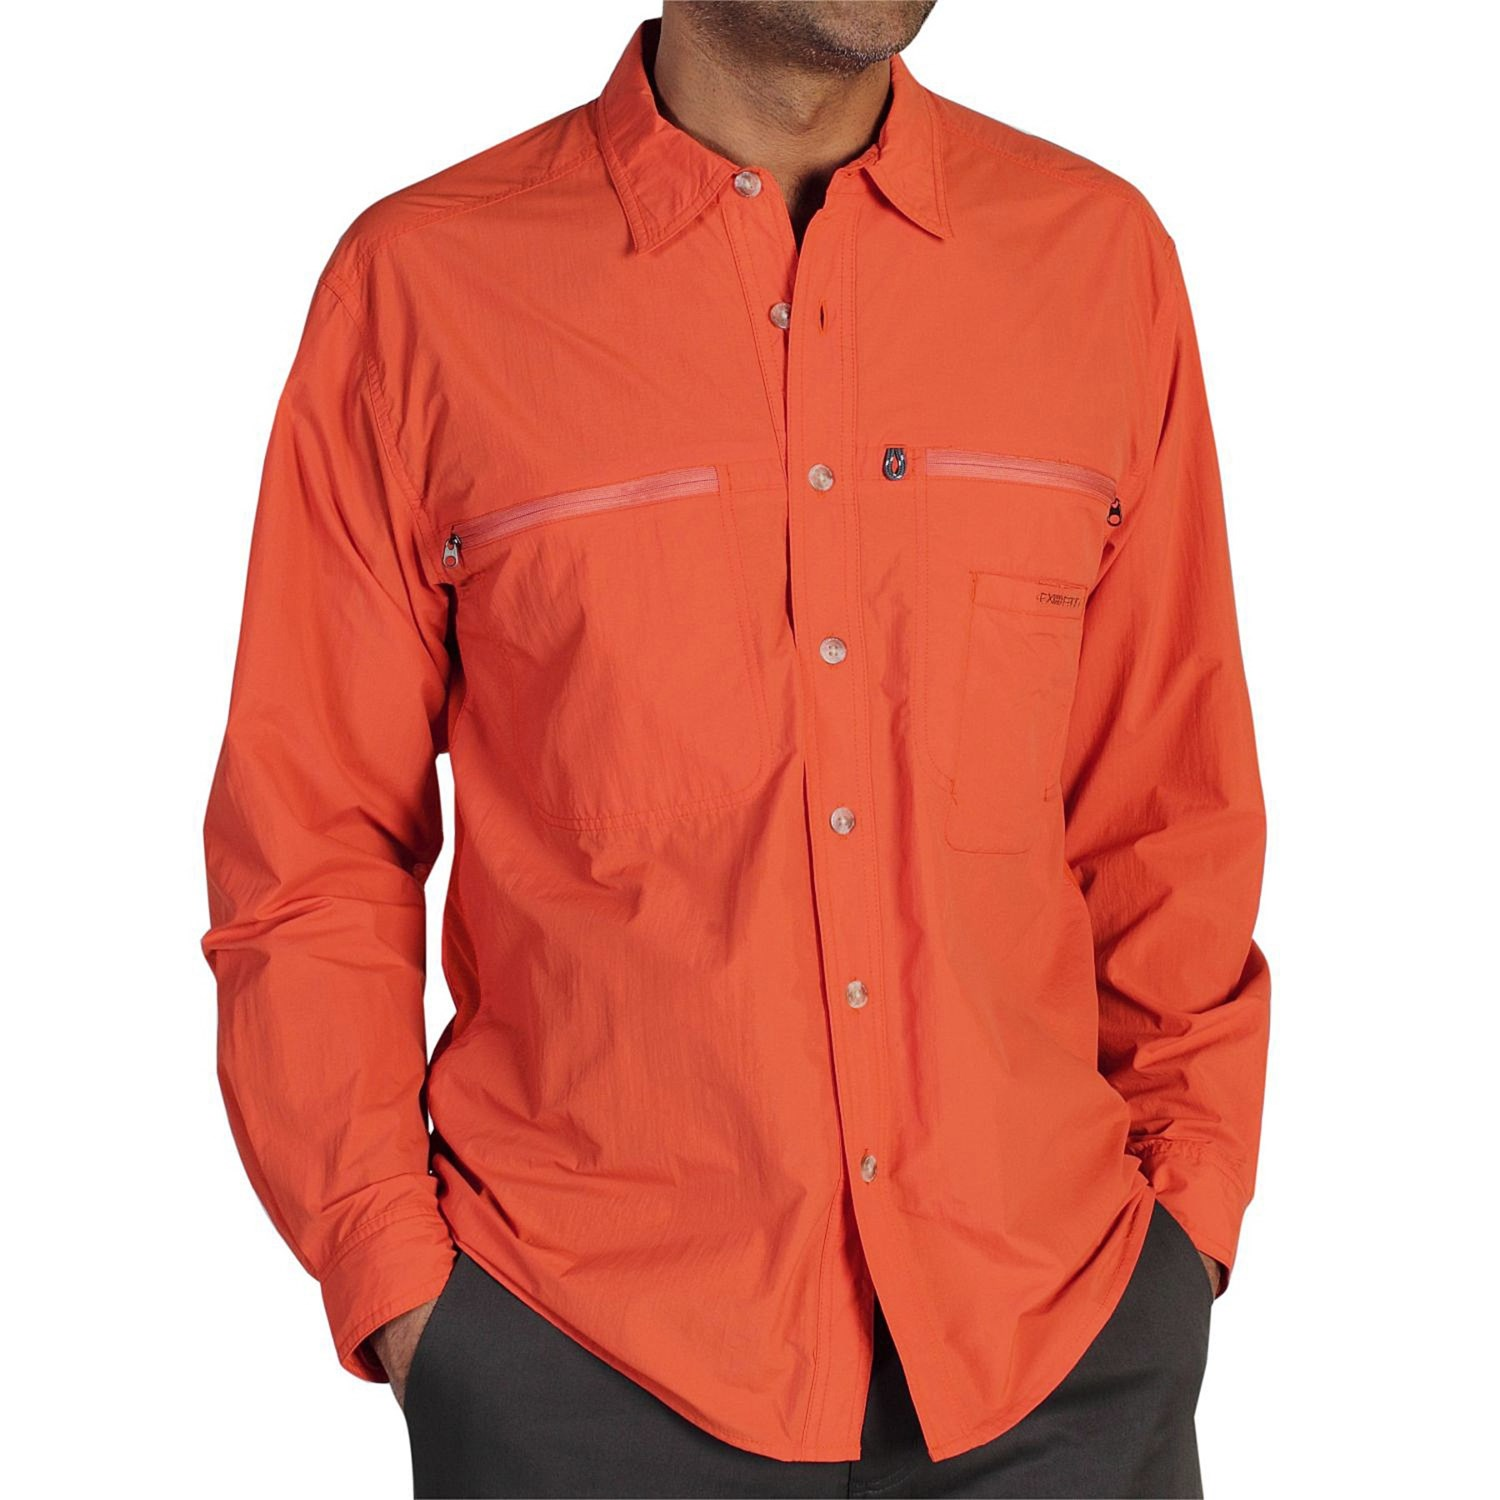 exofficio reef runner lite shirt upf 30 long sleeve